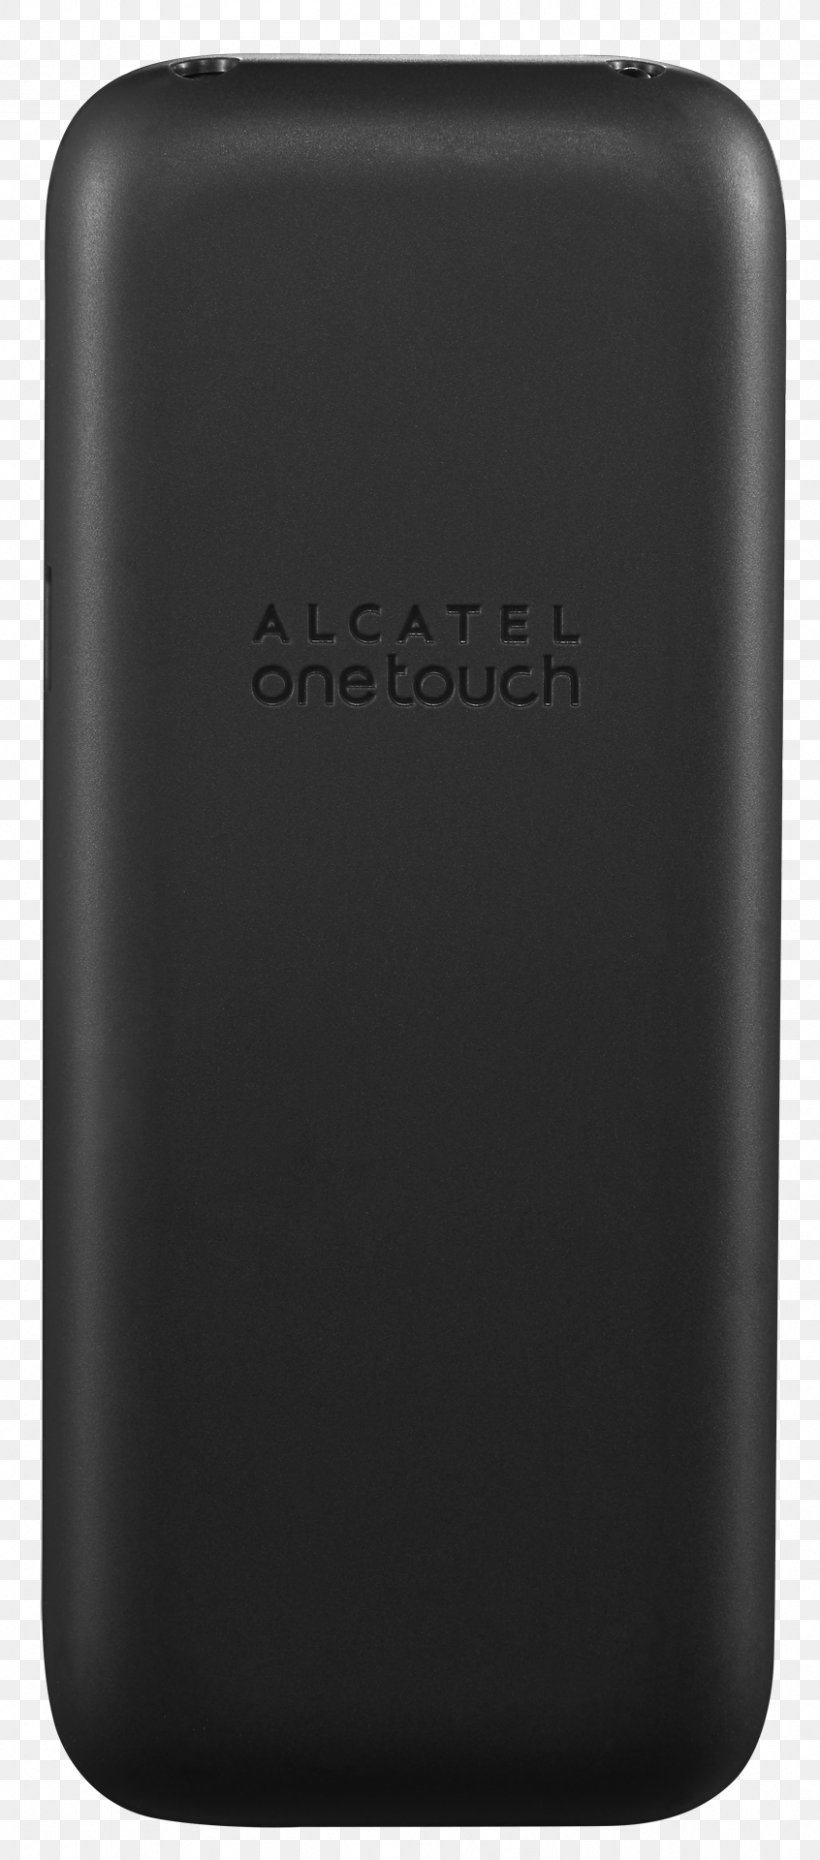 Alcatel one touch fire firefox os mozilla mobile operating system.